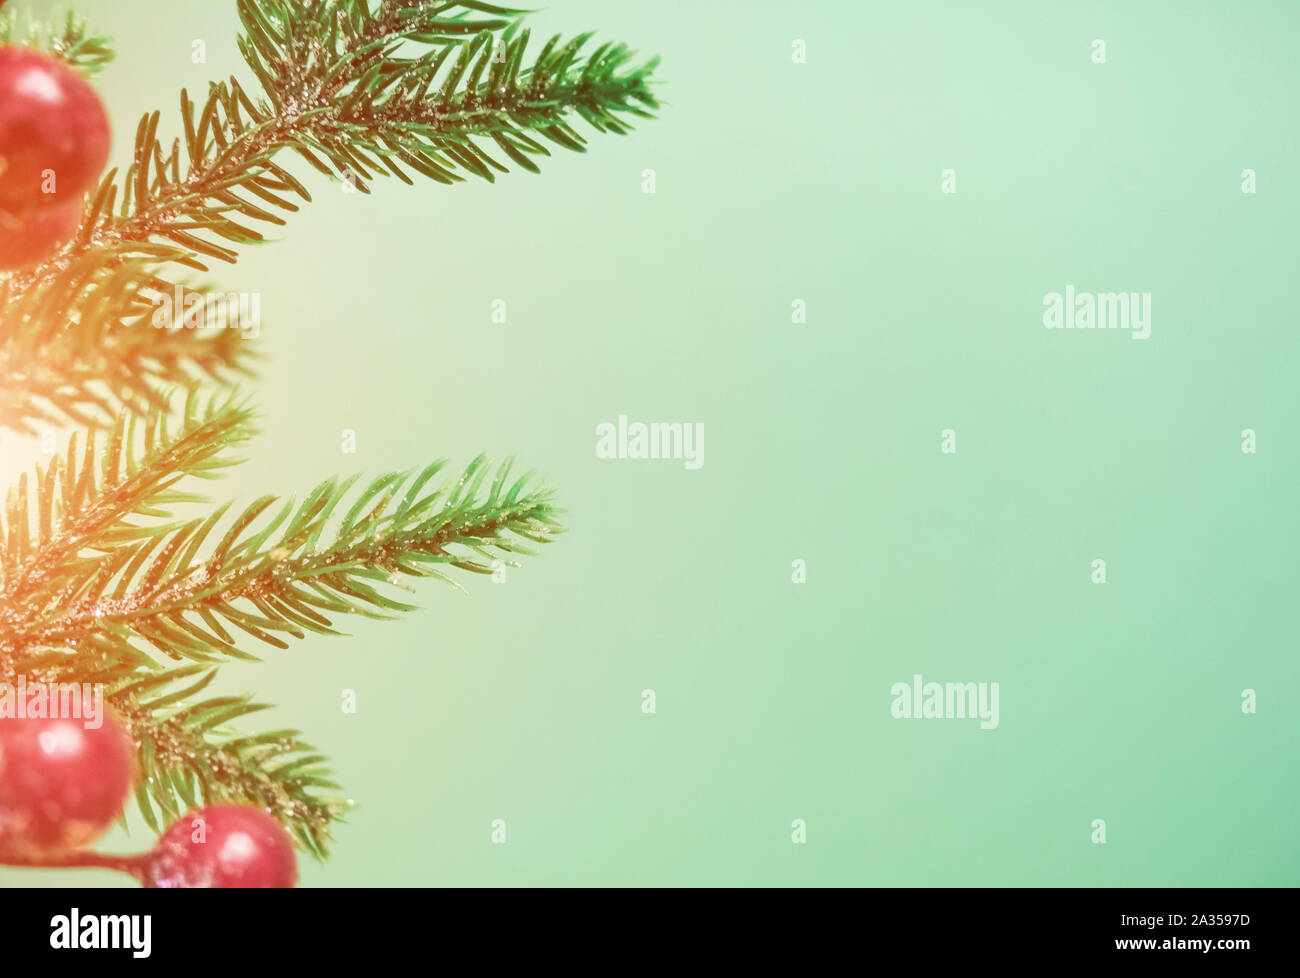 Christmas Decorations With Red Berries And Fir Branches On A Beautiful Mint Background Stock Photo Alamy